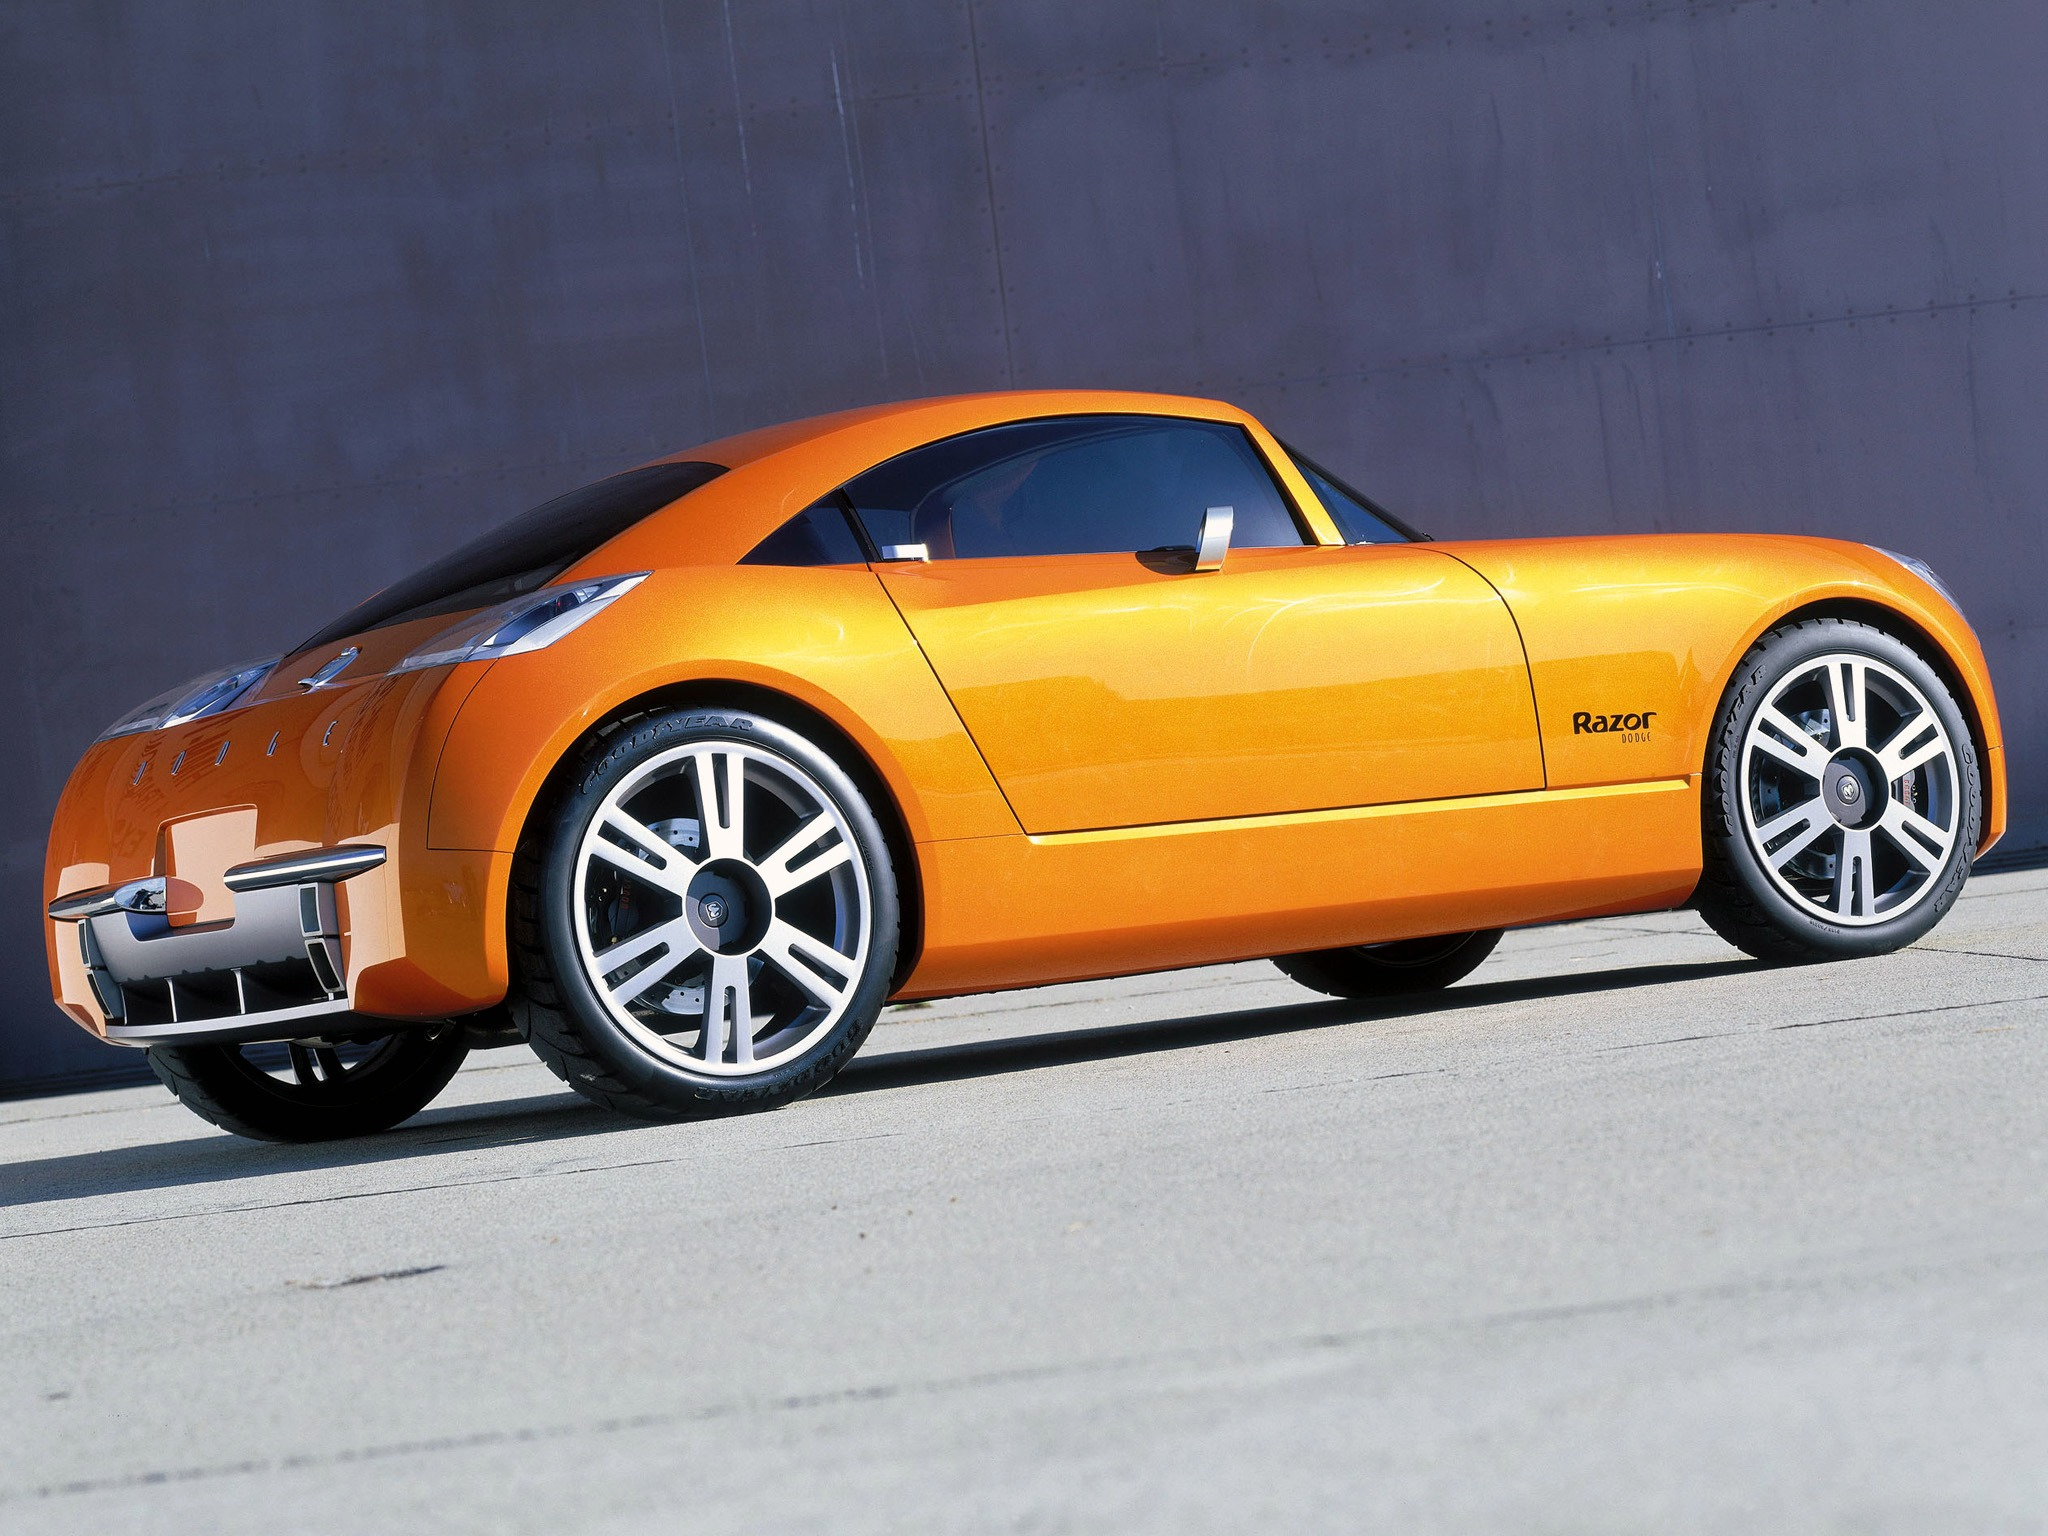 Dodge Razor Concept (2002) – Old Concept Cars